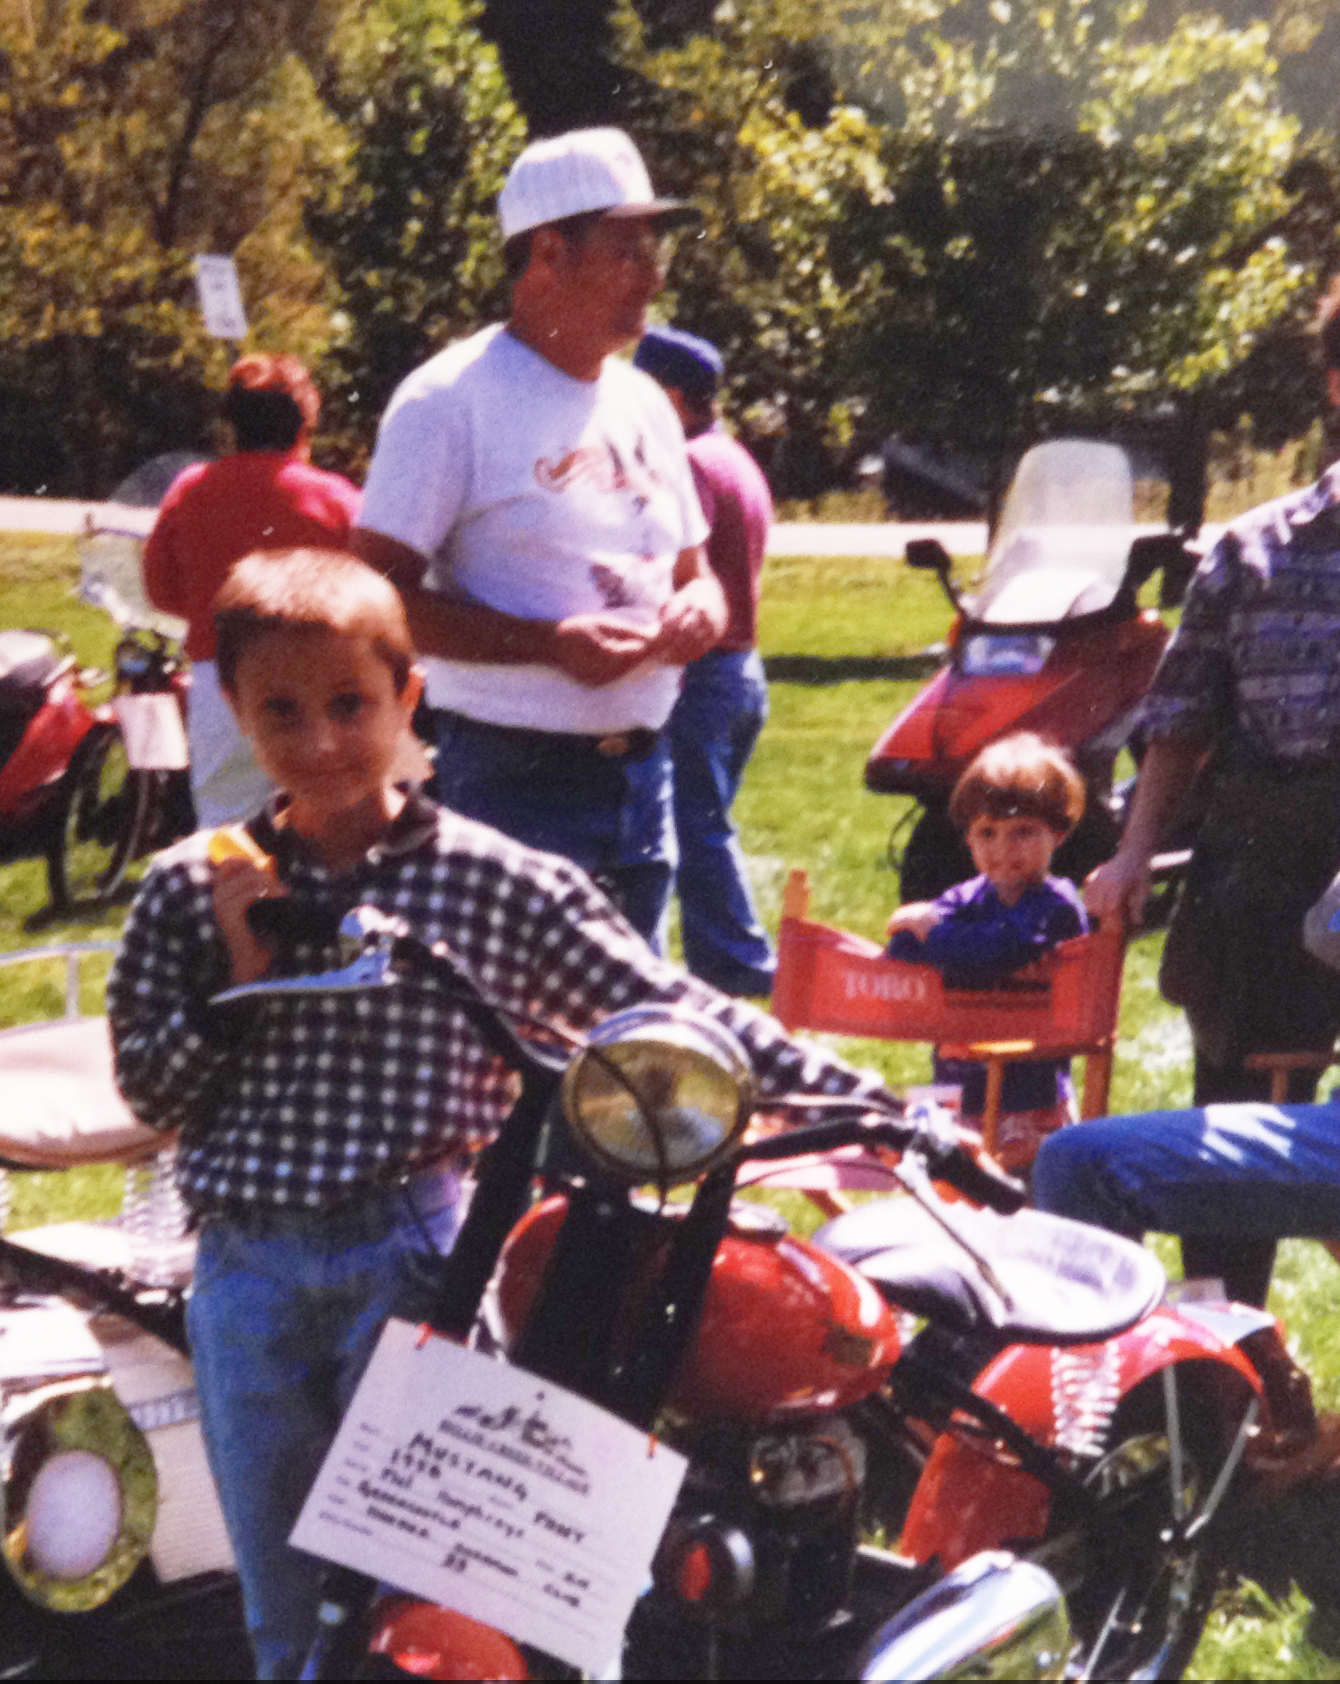 Me with my grandpa behind me at a scooter show.